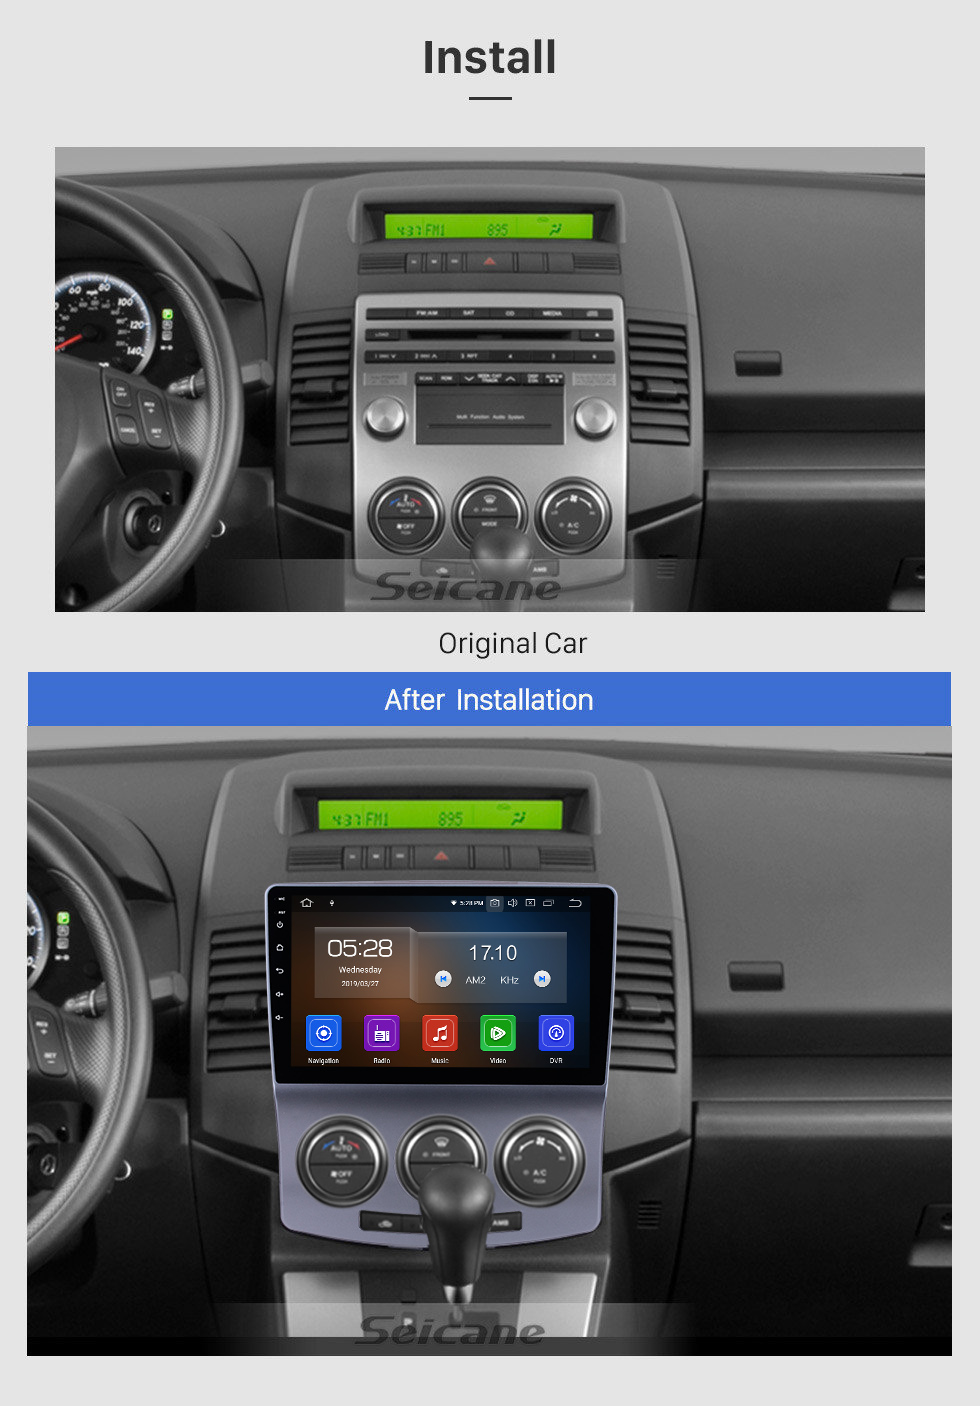 Seicane 2005-2010 Old Mazda 5 Android 9.0 1024*600 HD Touchscreen GPS Navigation Radio Bluetooth 4G WIFI USB OBD2 Aux 1080P Rearview Camera Mirror Link